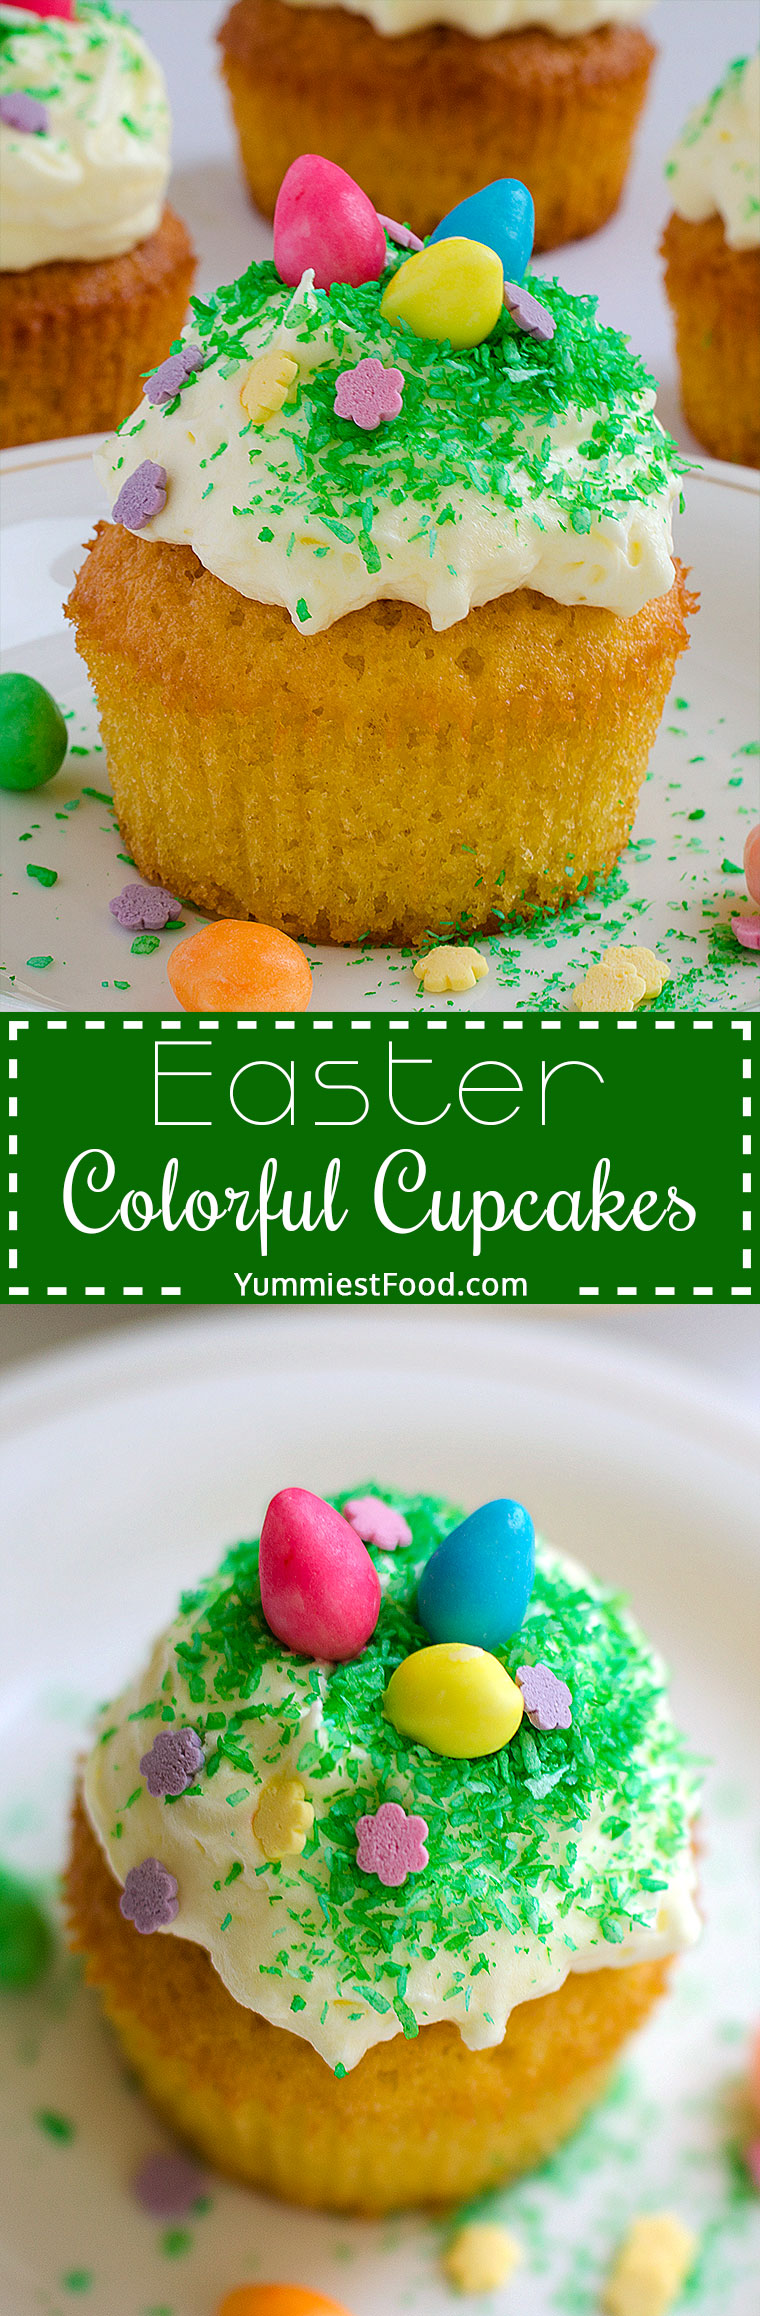 Easter Colorful Cupcakes - Easter is coming, so try to make these Easter colorful cupcakes and surprise your family and children! Very easy, quick, soft and delicious Easter colorful cupcakes